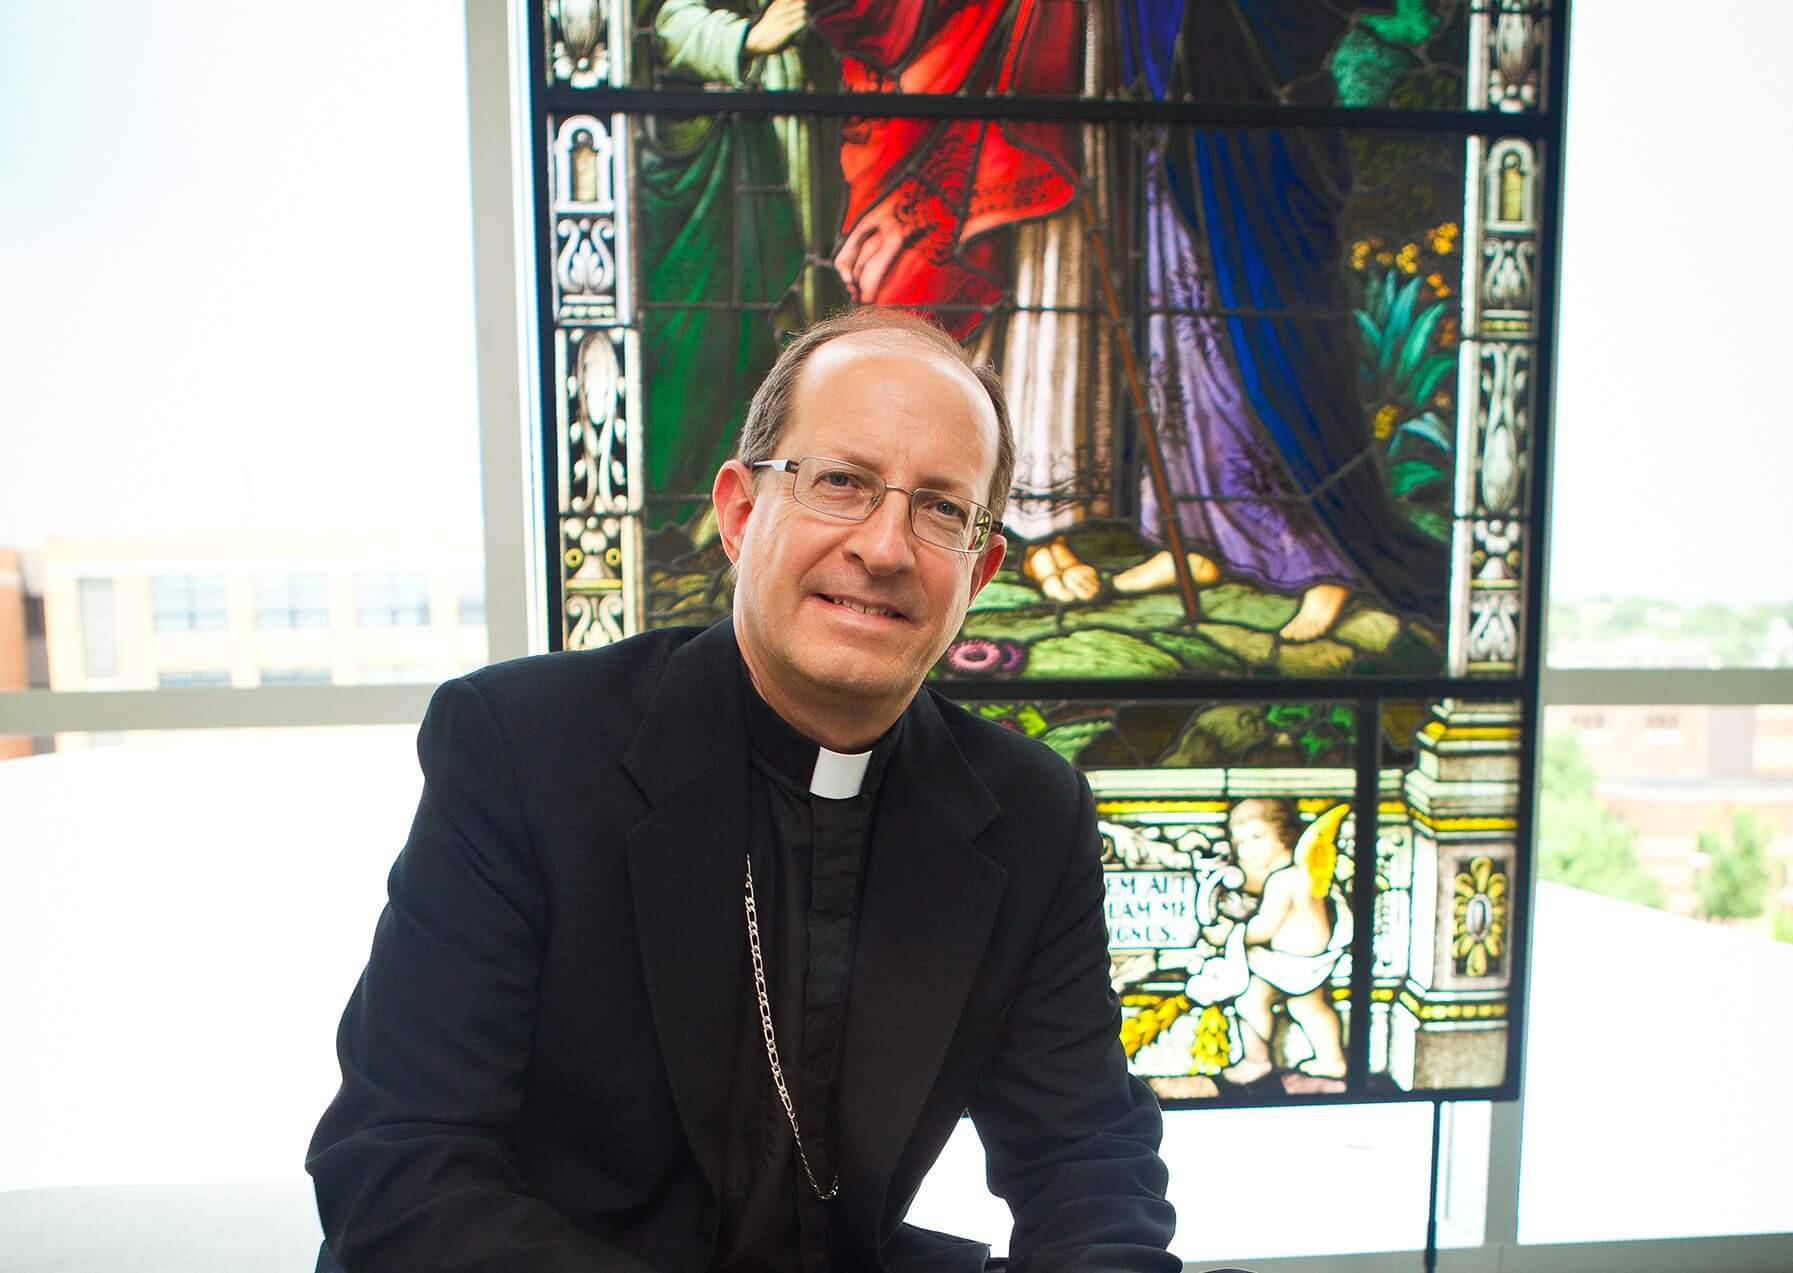 Bishop Walkowiak sits near a stained glass window at Cathedral Square Center